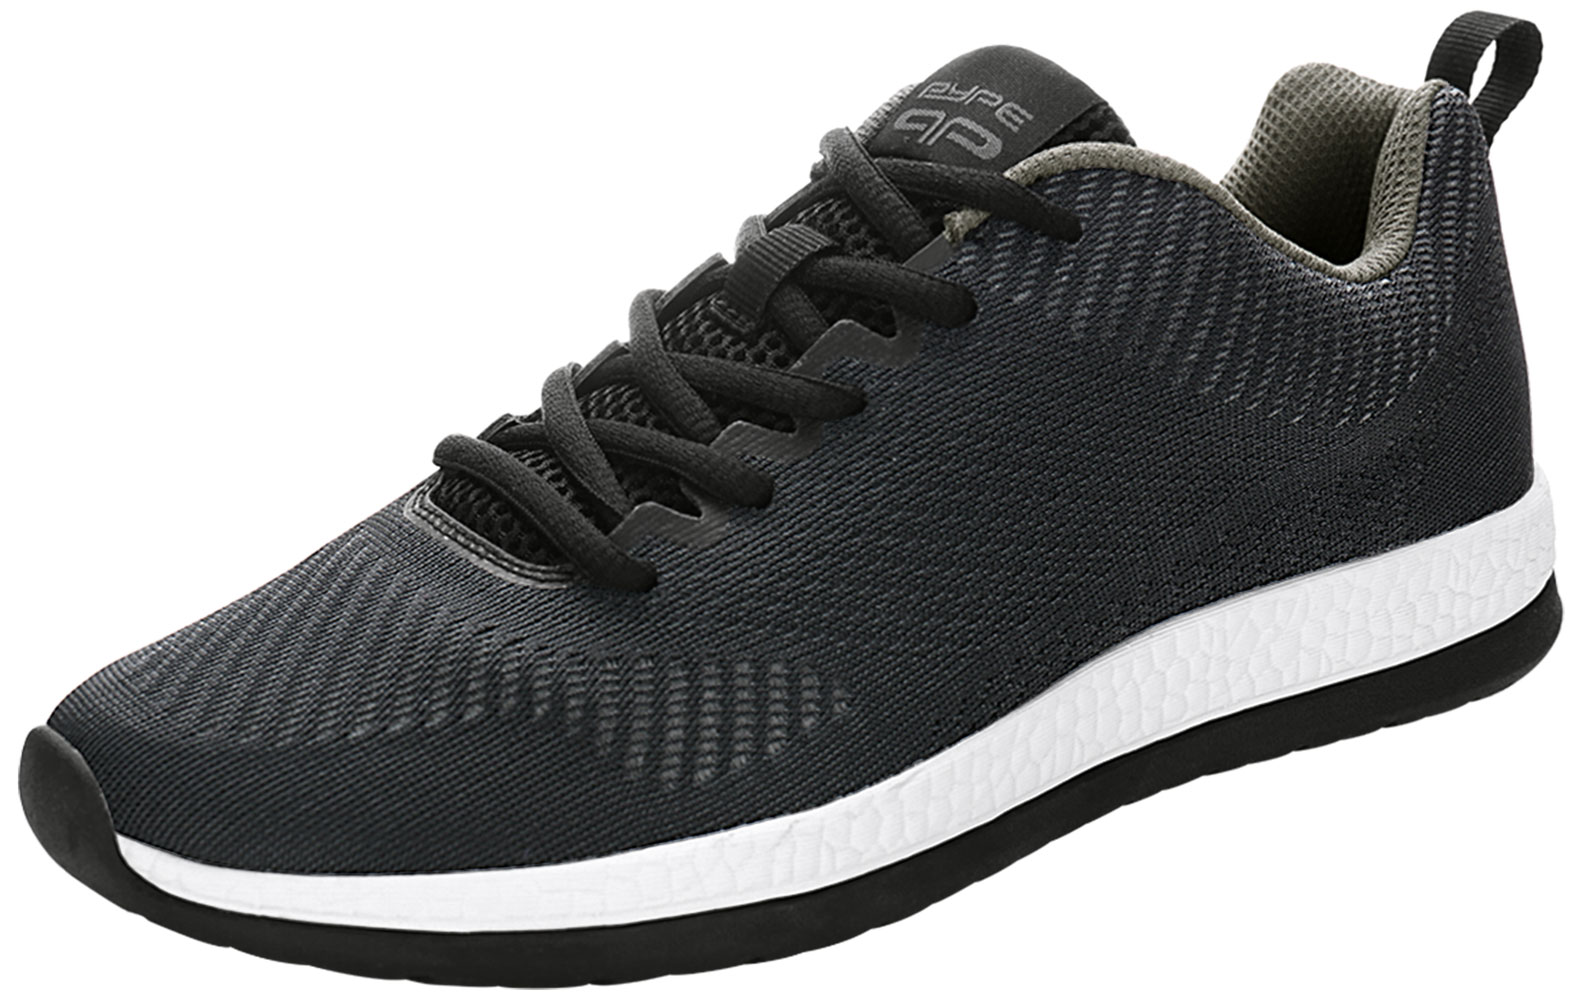 PYPE Women Mesh Contrast Color Round Toe Training Sneakers Black US 7.5